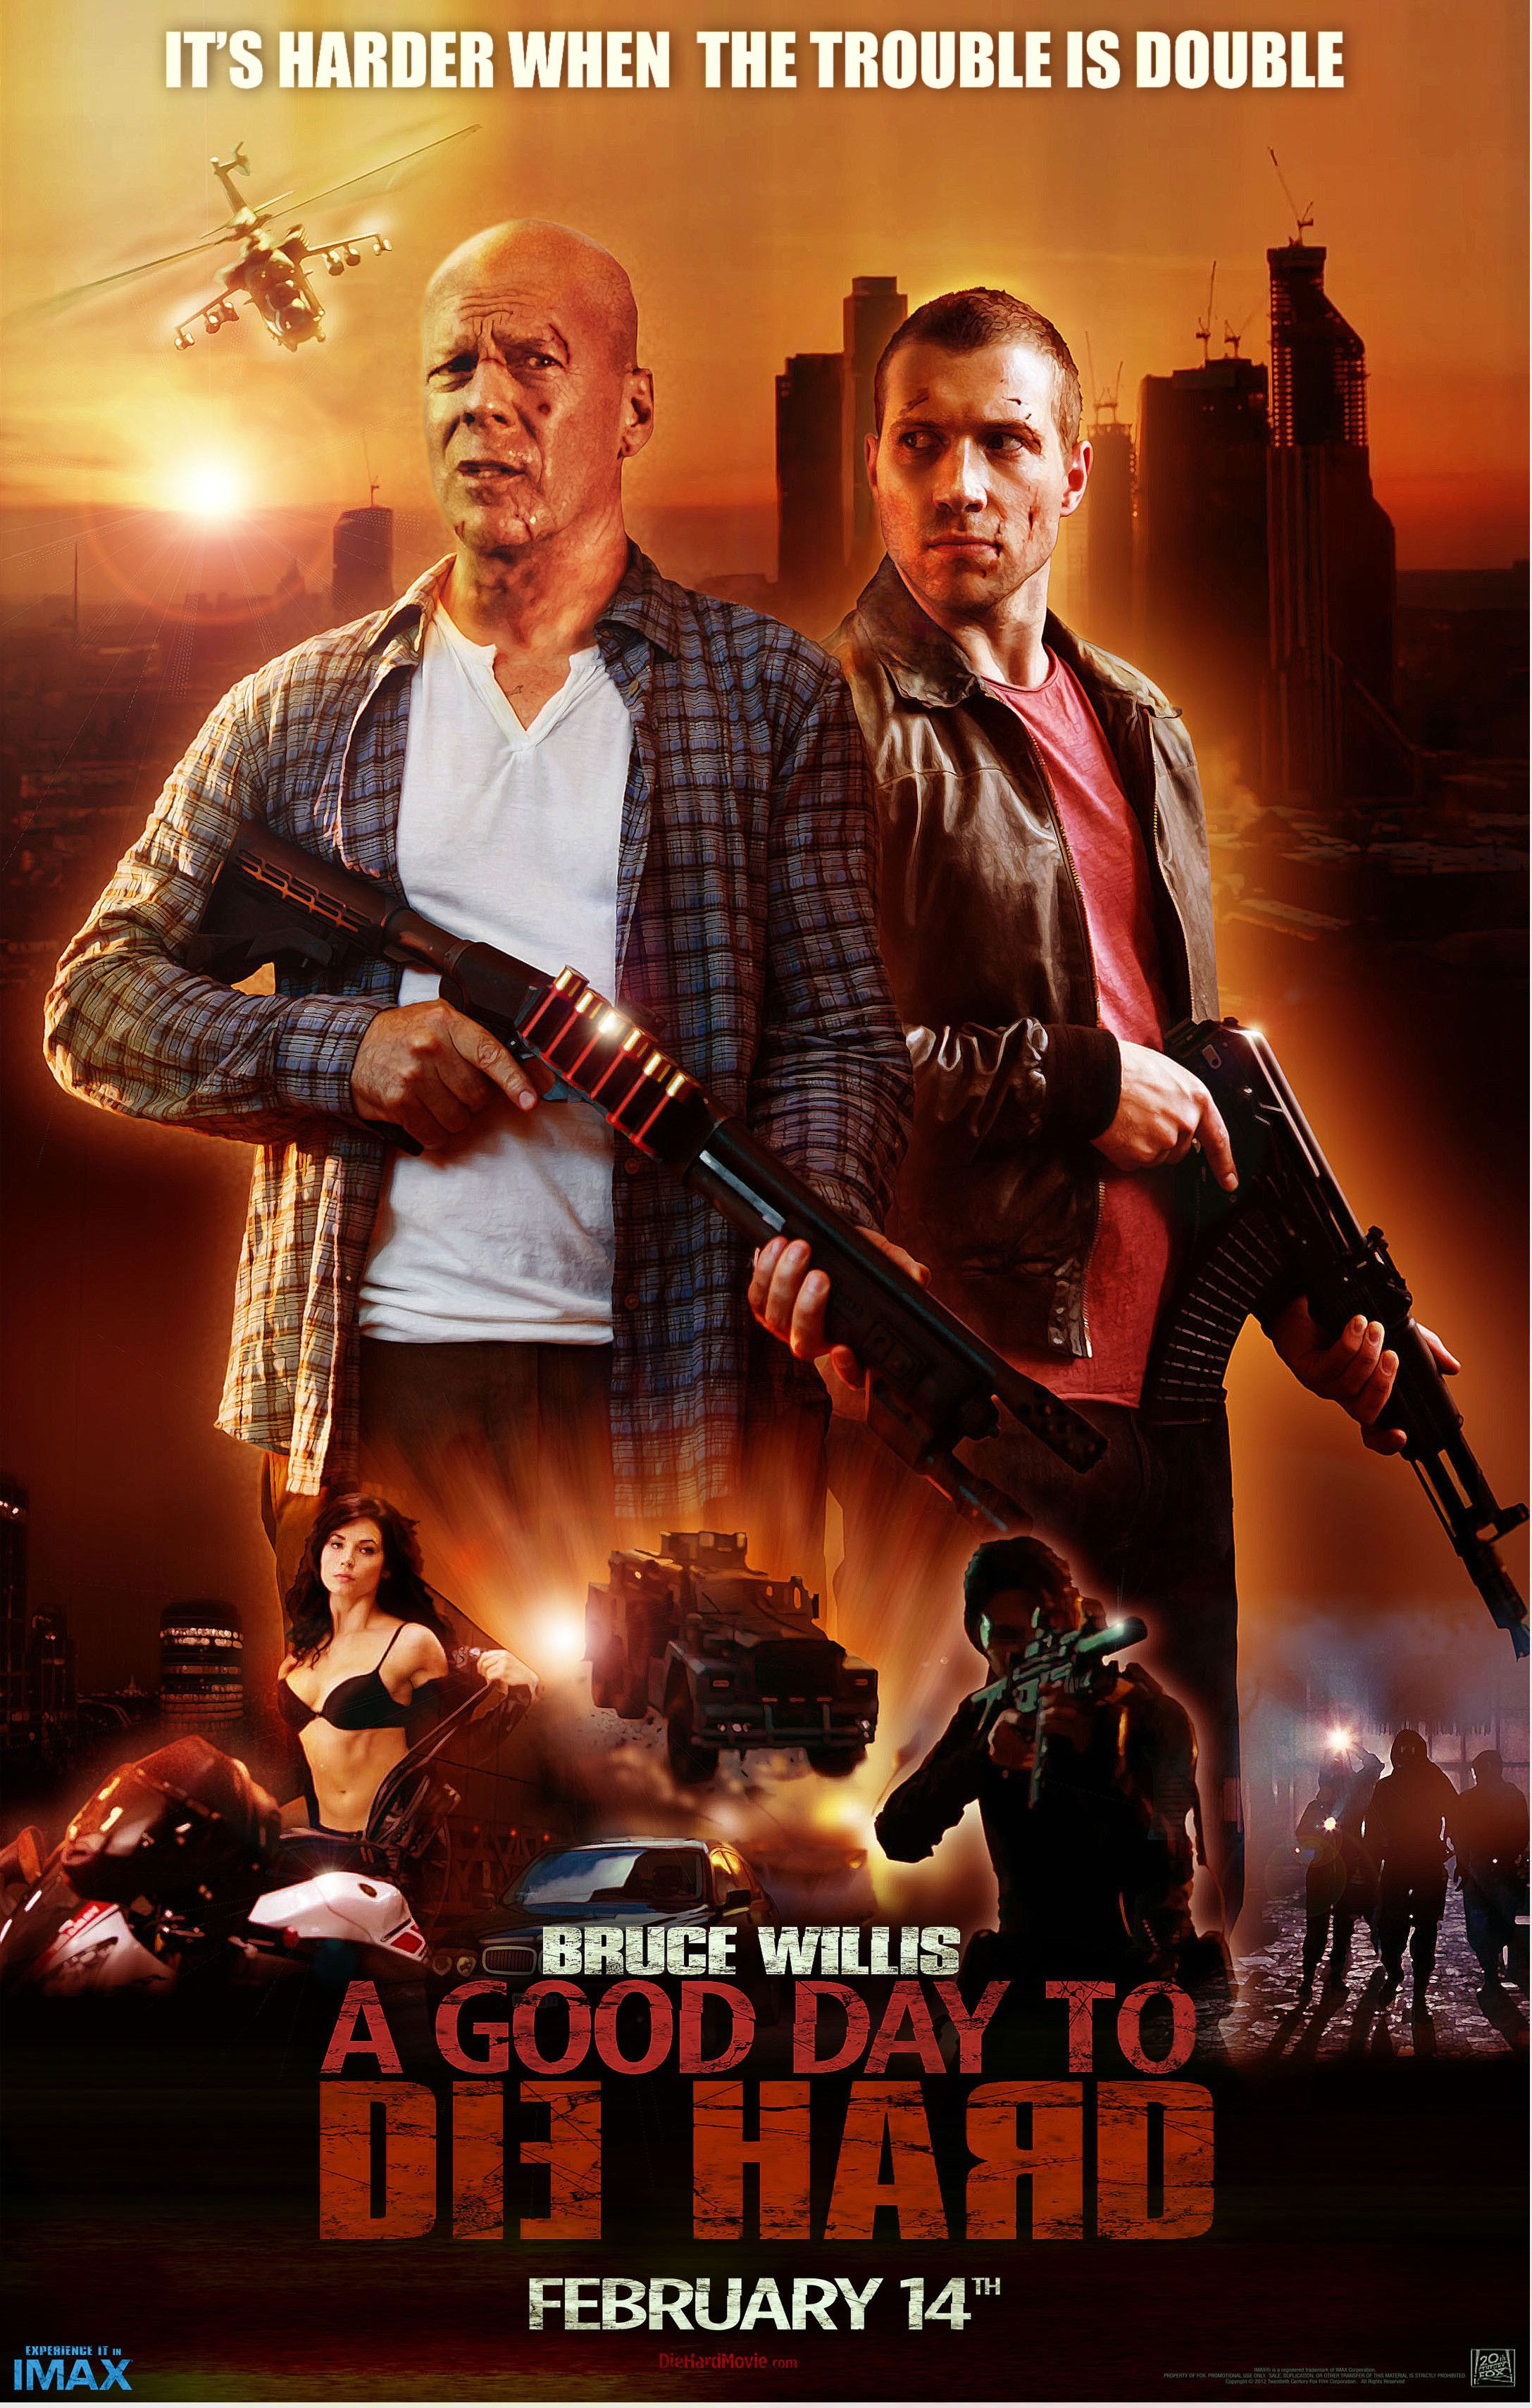 A Good Day to Die Hard YIFY subtitles